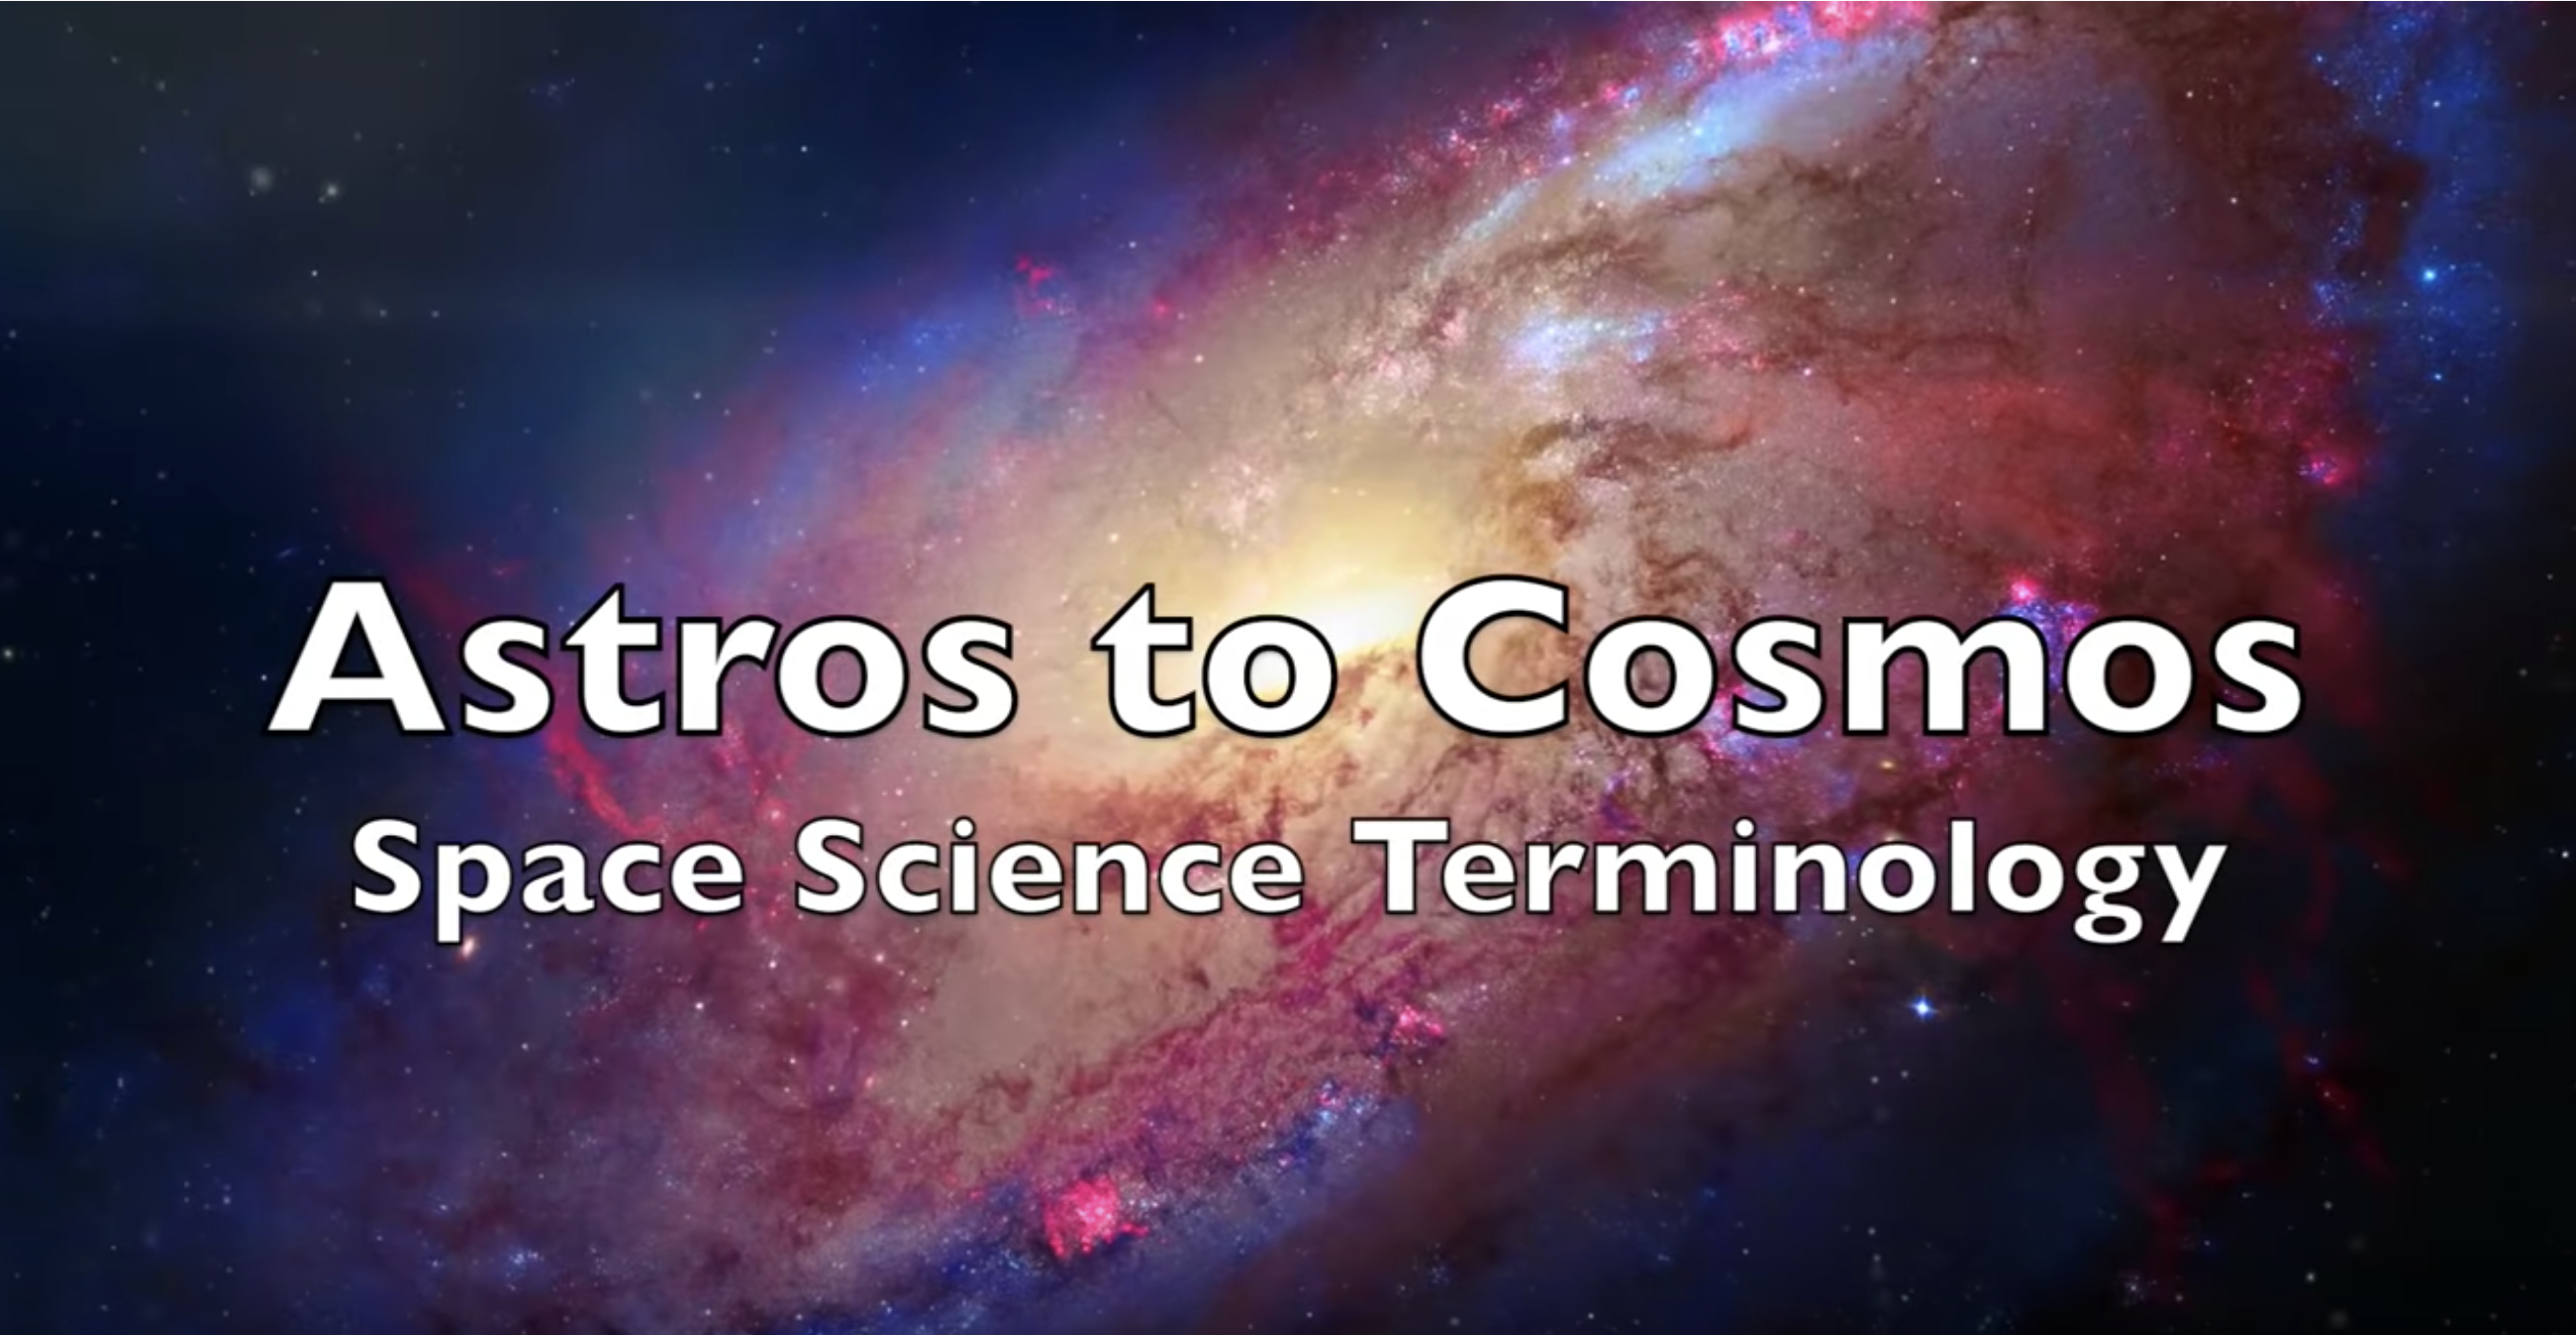 Astros to Cosmos Space Scales 1 28 2020